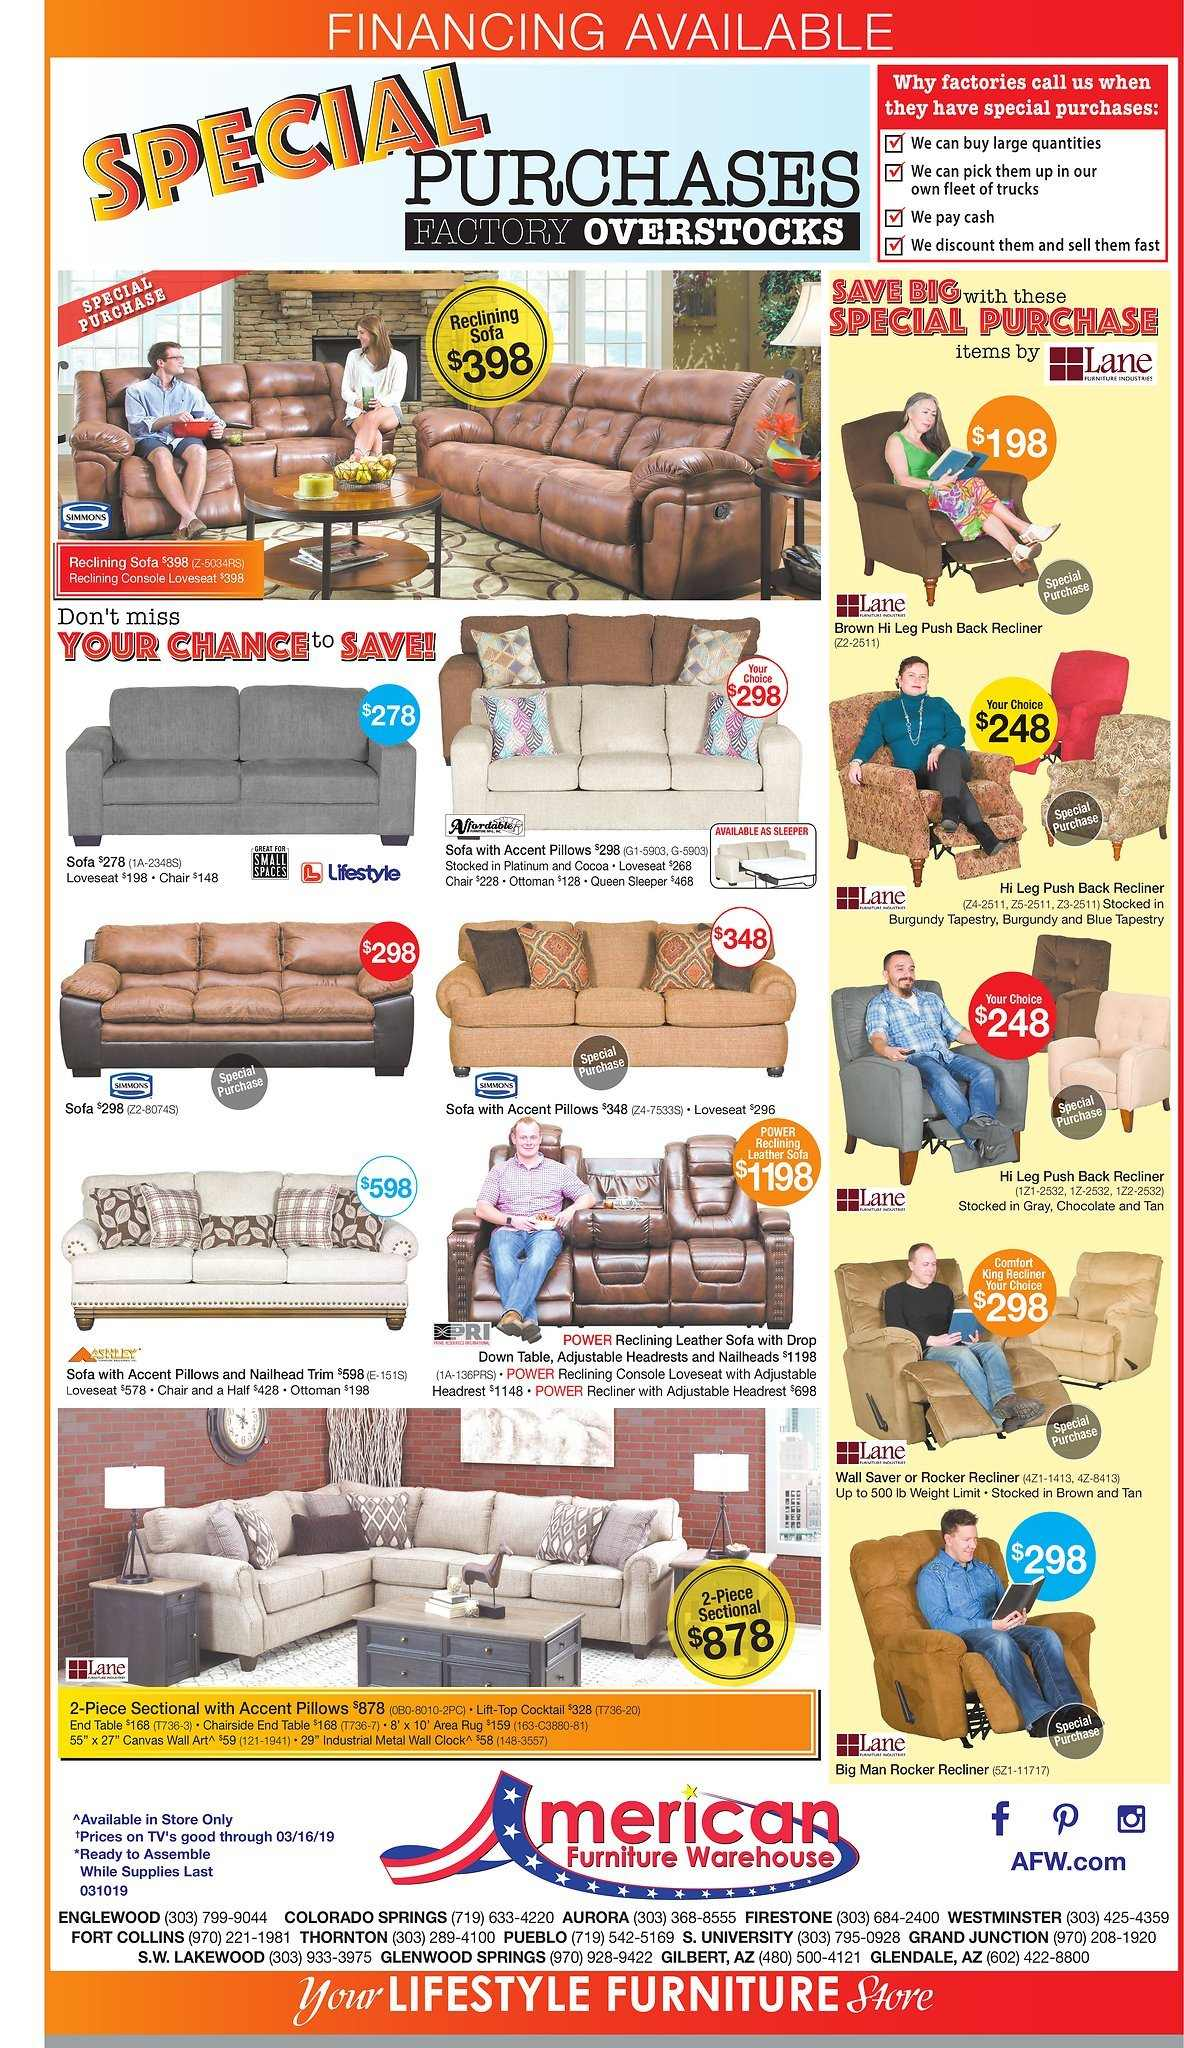 American Furniture Warehouse Flyer  - 03.10.2019 - 03.16.2019. Page 1.